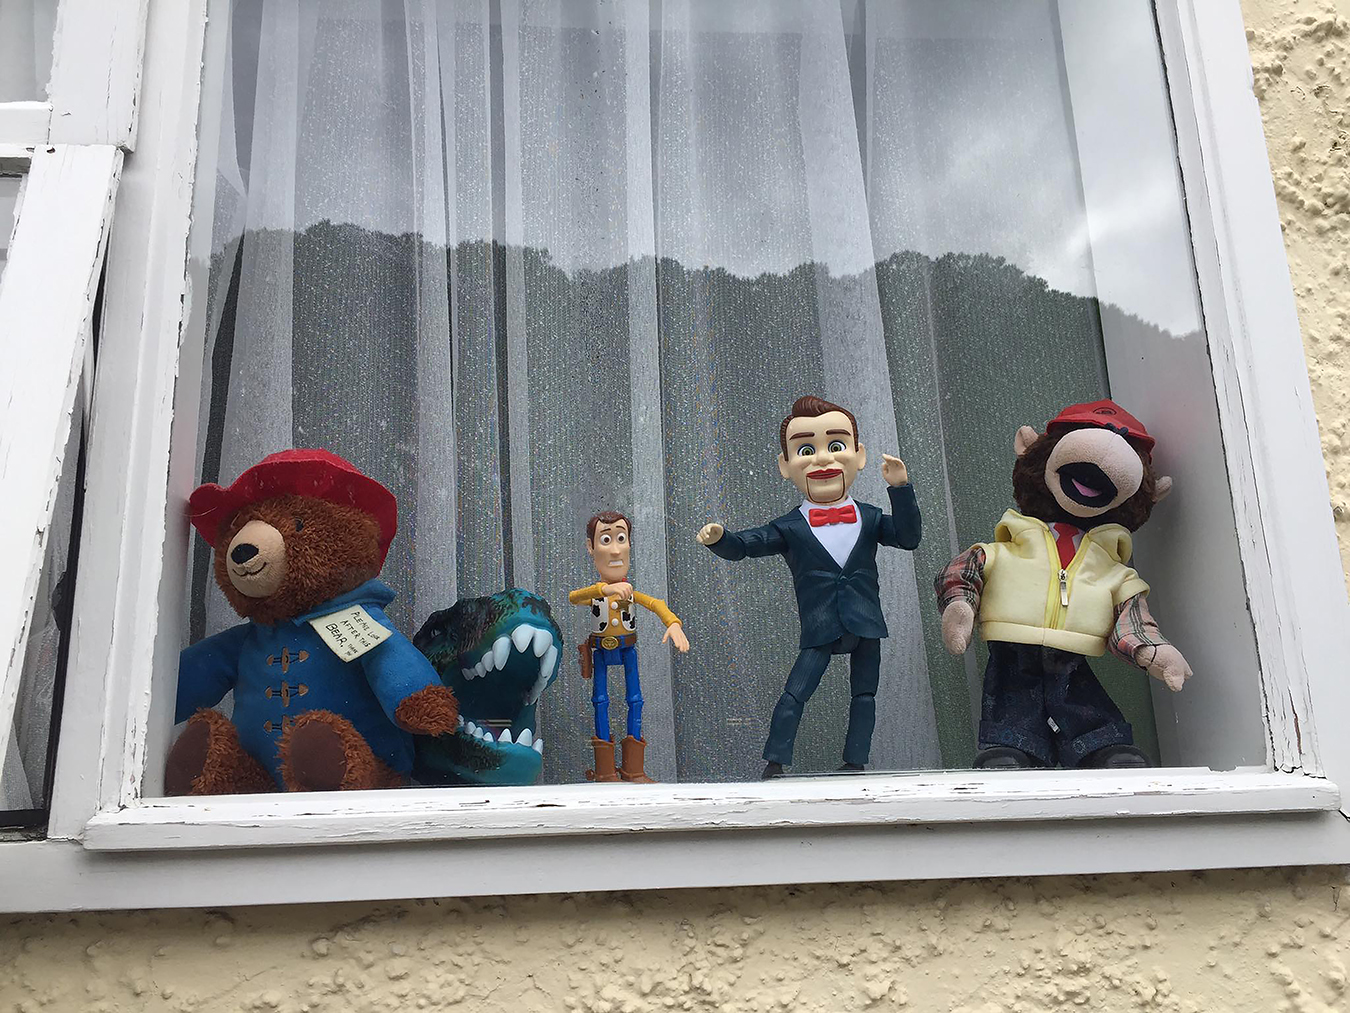 Around the nation, teddy bears, stuffed animals, and figurines appeared in windows to indicate support and solidarity for the national lockdown. Photo by Revena Correll Trnka.